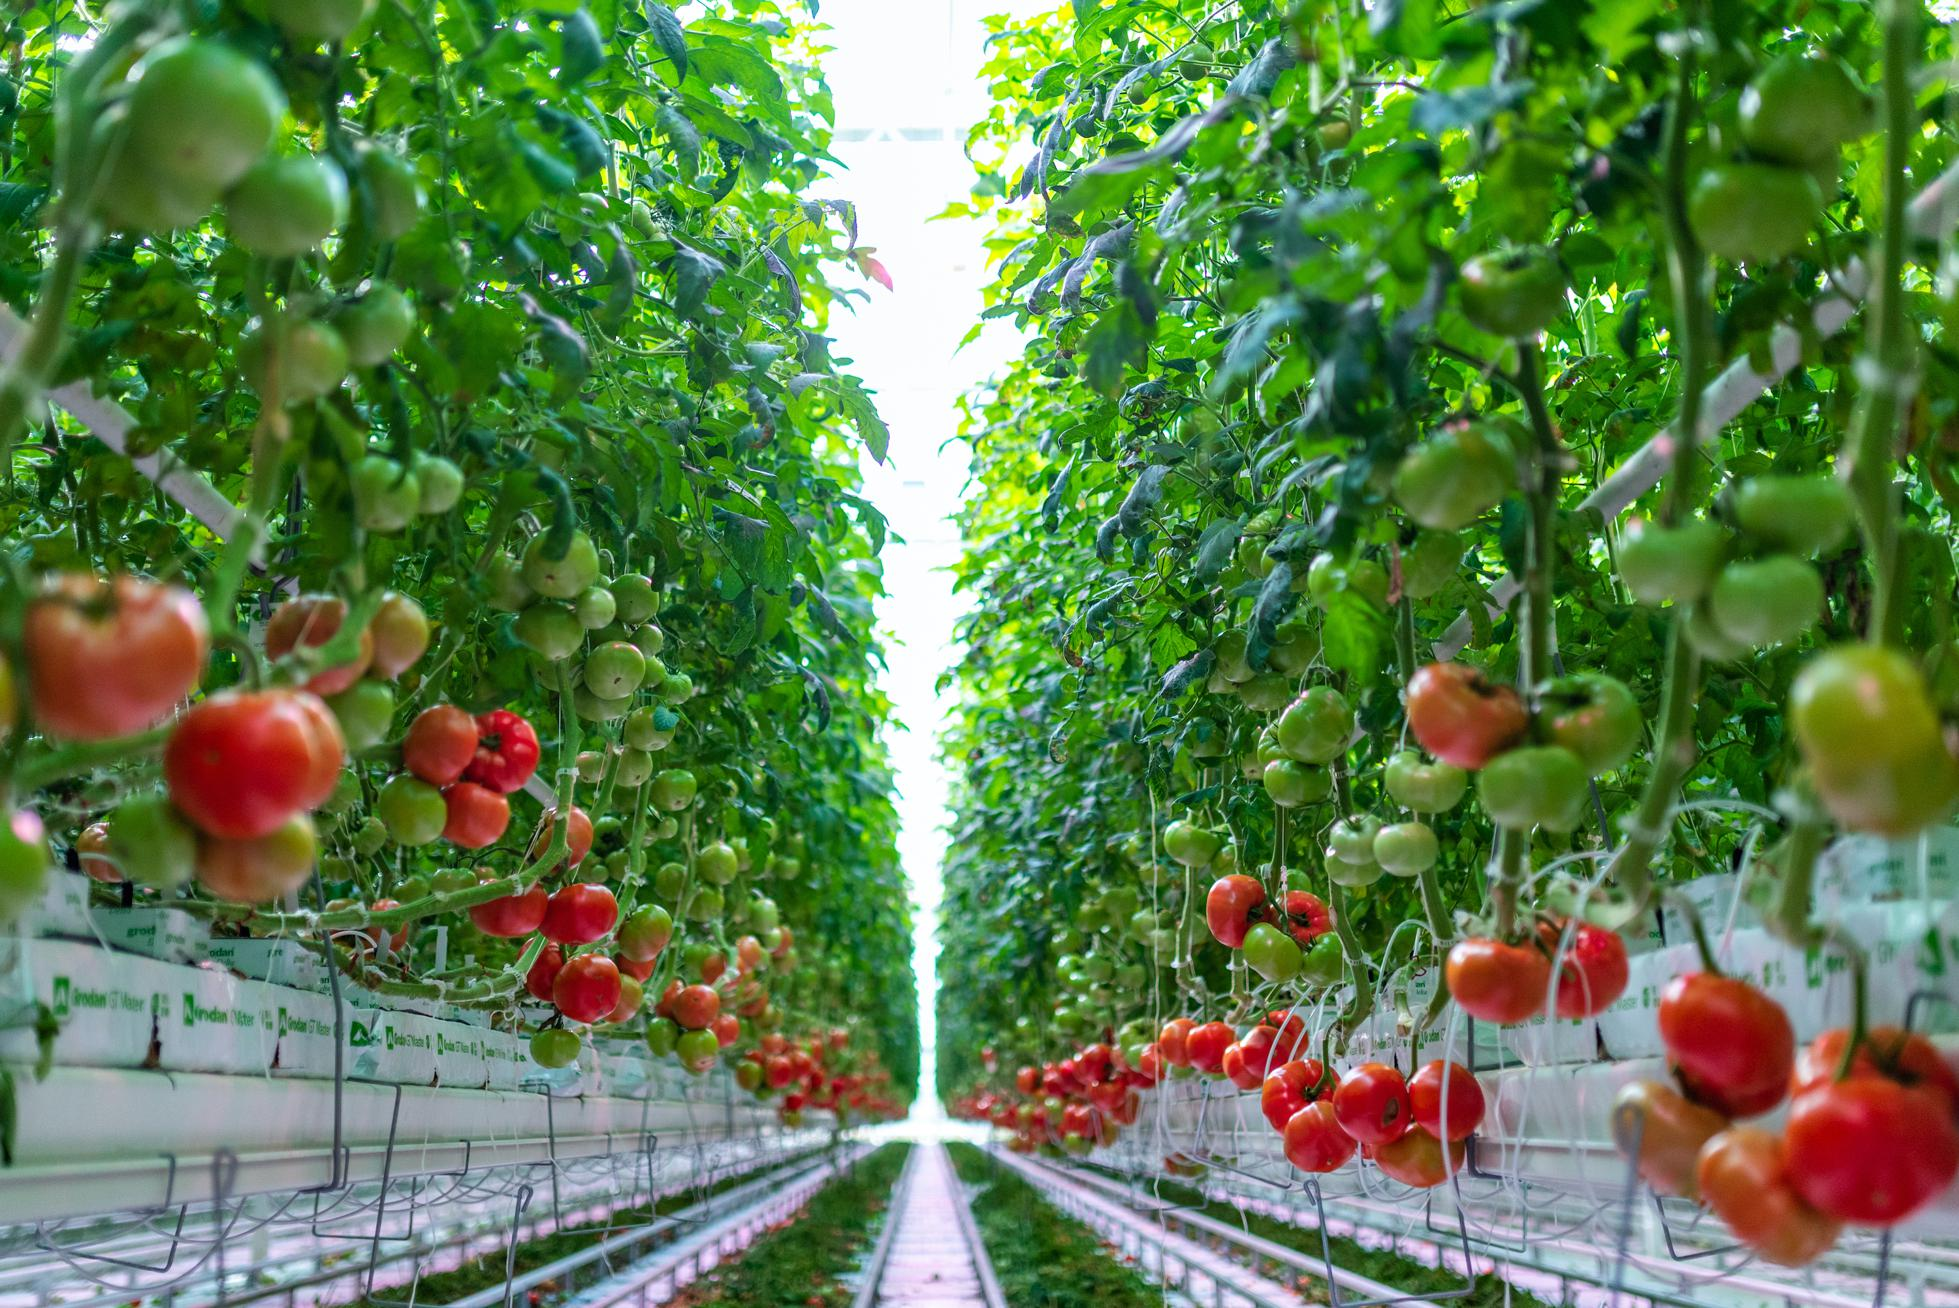 AppHarvest's 60-acre indoor farm in Morehead, Kentucky grows a variety of tomatoes on the vine and beefsteaks.